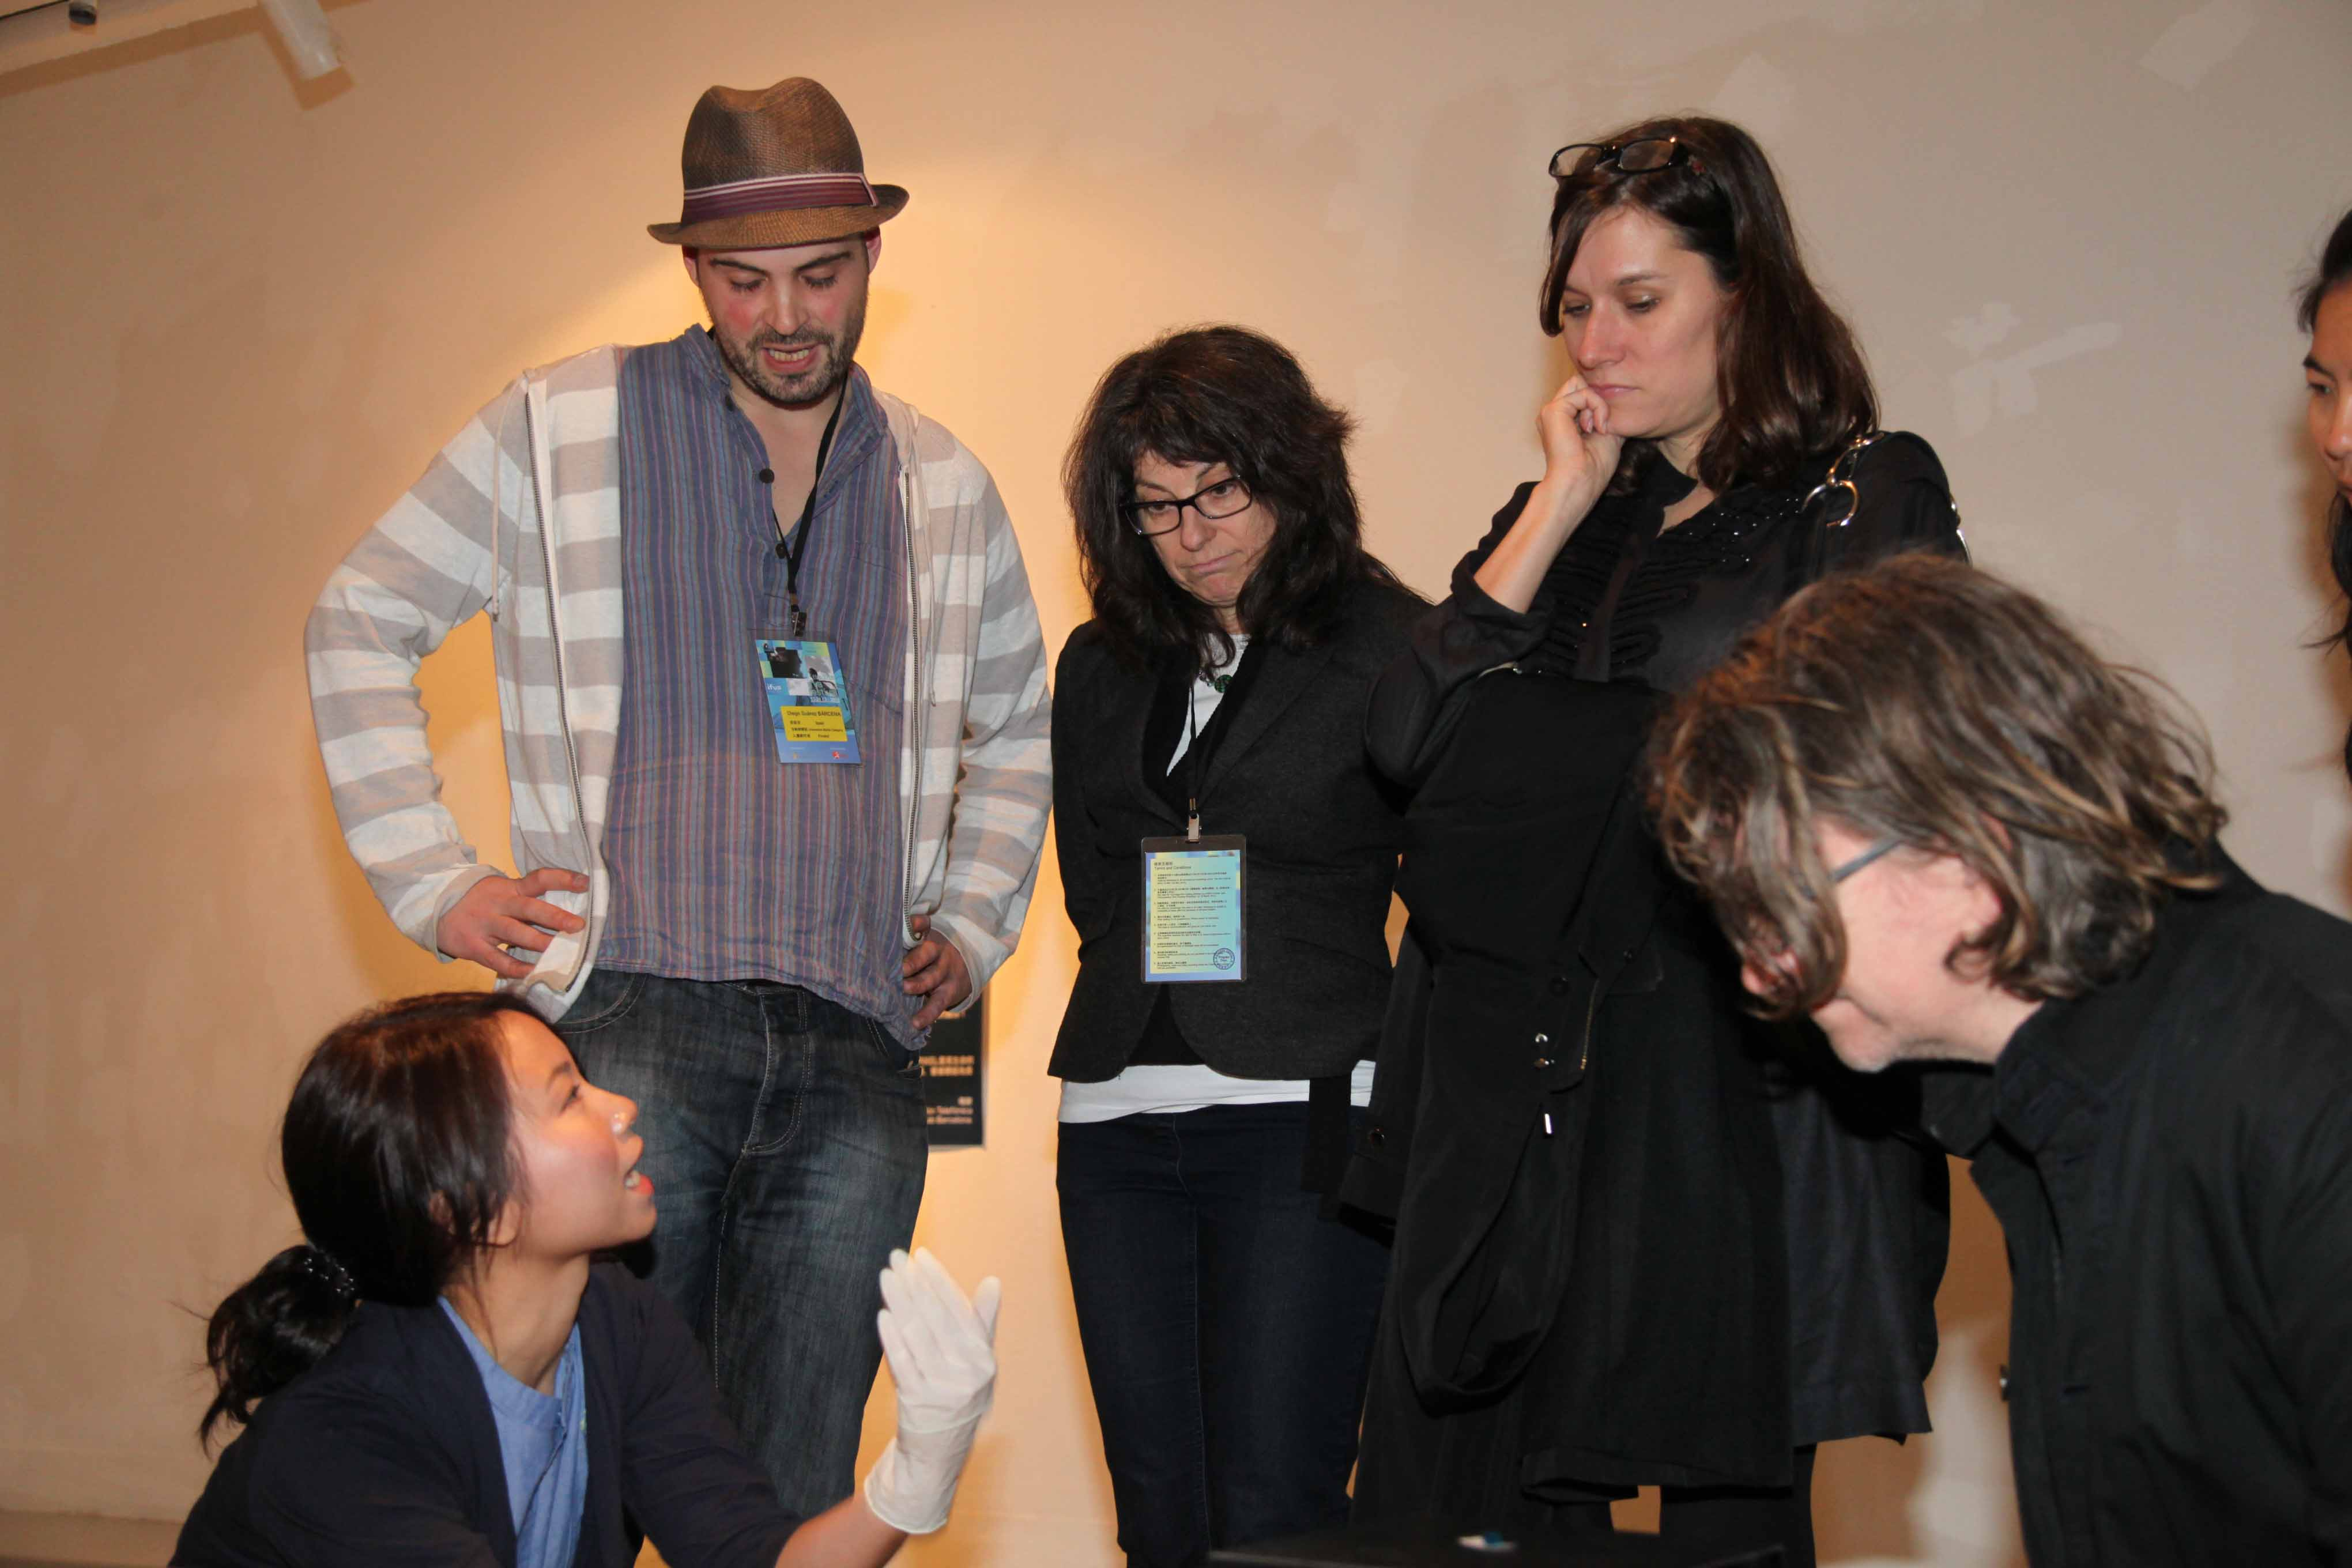 Diego Suárez Bárcena and Ani Pui-hing explaining their finalist work <i>Pixel Bite</i> to Diane Landry and Jennifer & Kevin McCoy